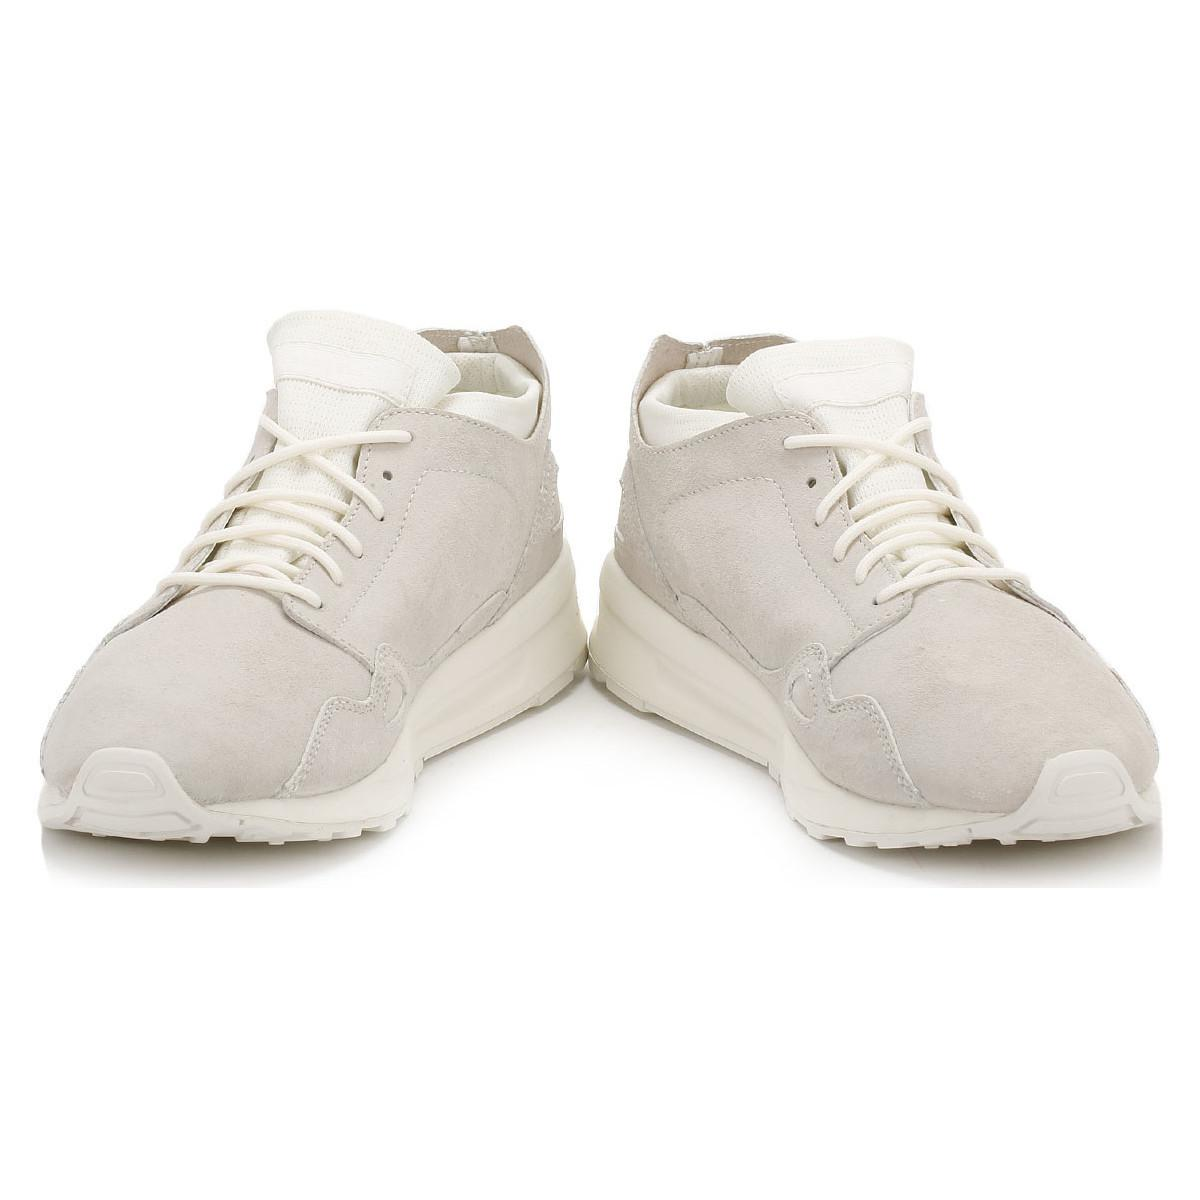 Le Coq Sportif Suede Womens White Marshmallow Lcs R Flow Trainers Women's In White for Men